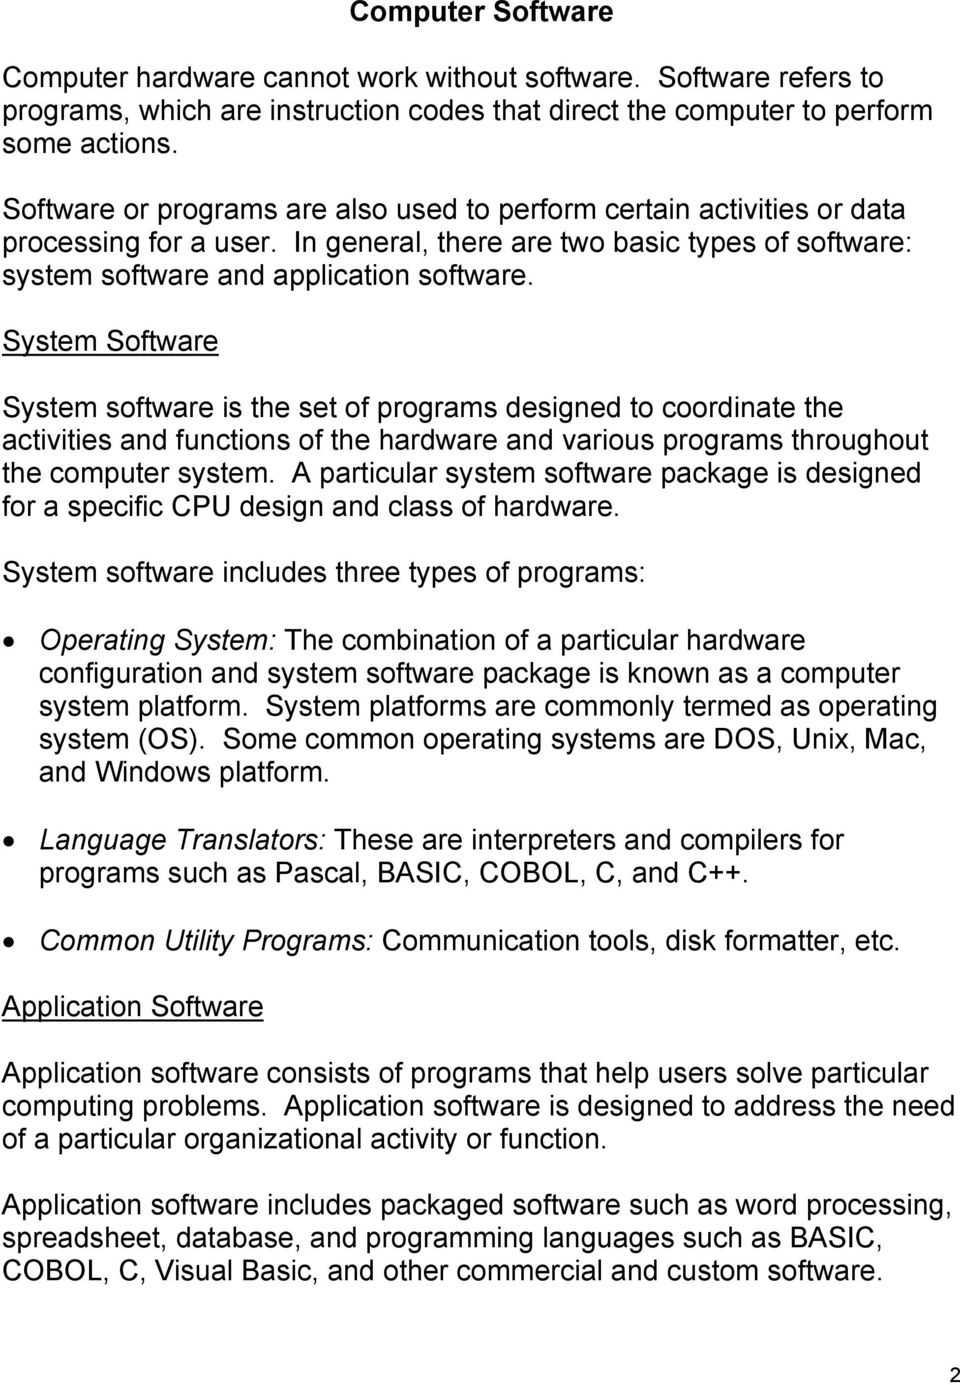 System Software System software is the set of programs designed to coordinate the activities and functions of the hardware and various programs throughout the computer system.